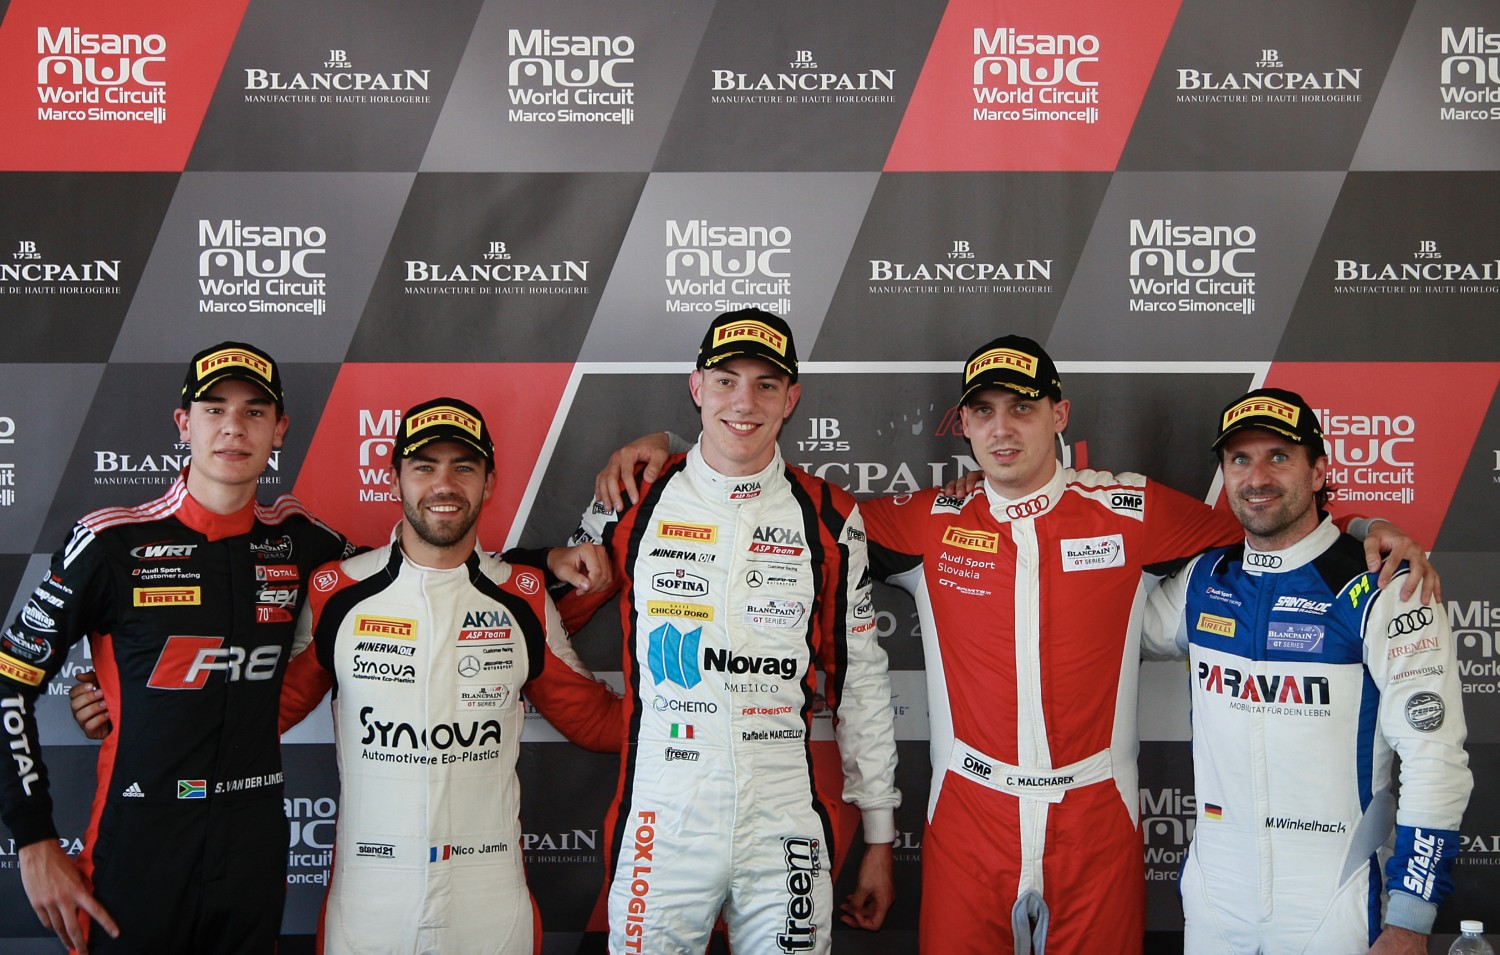 AKKA ASP Mercedes takes pole position double at Misano